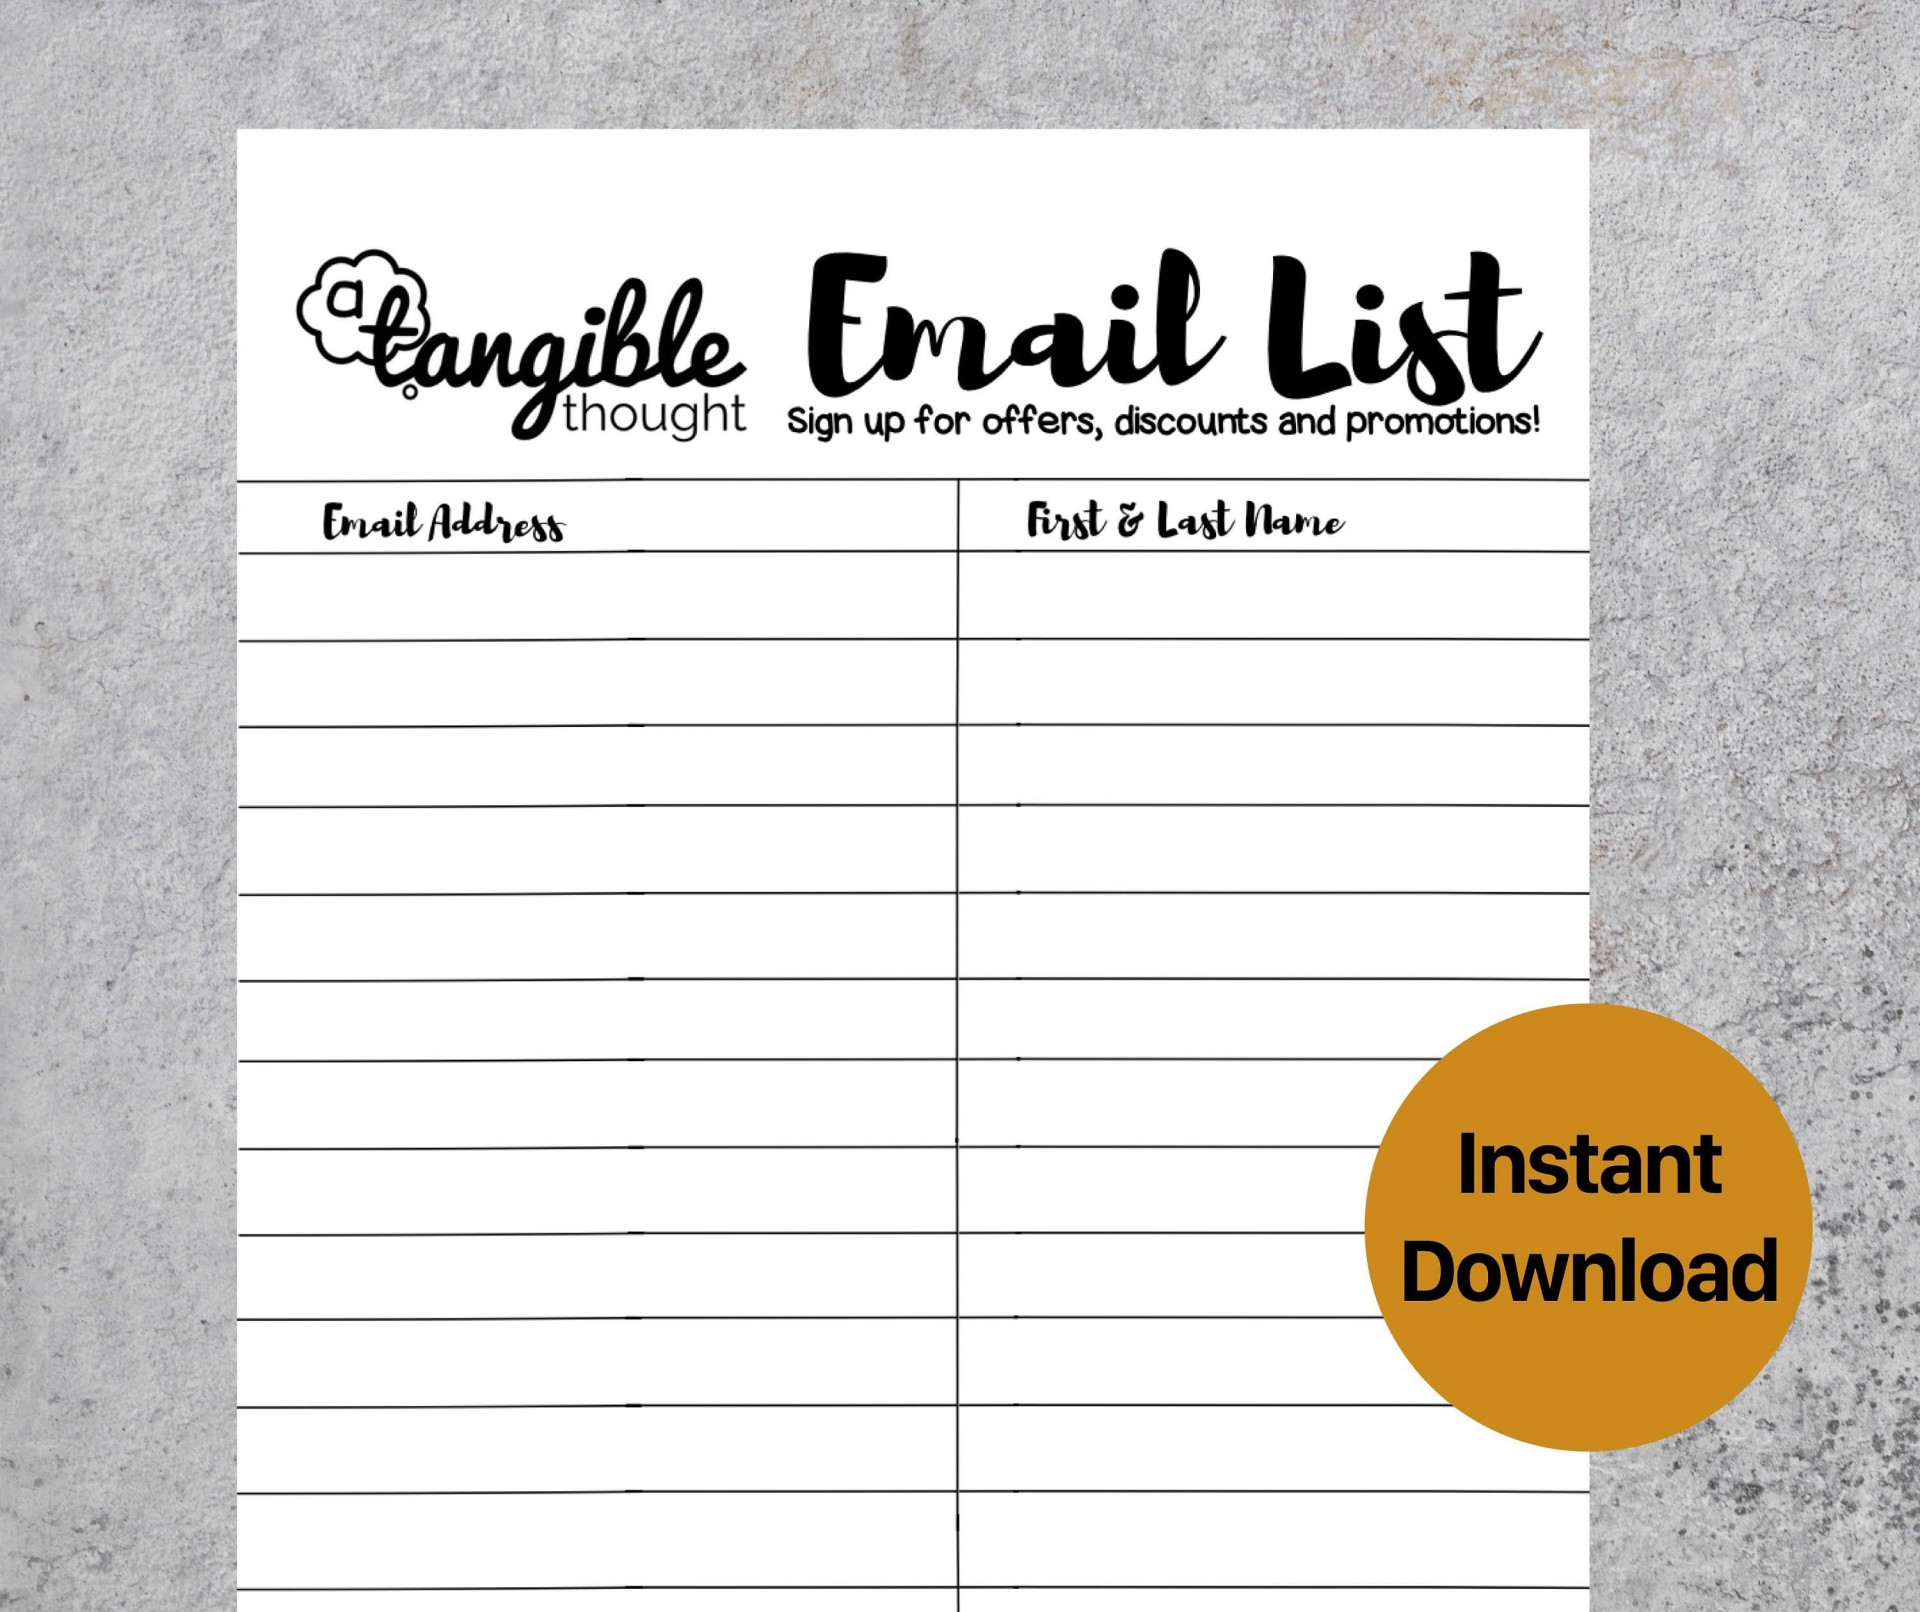 009 Fascinating Email Sign Up Template Sample  Sheet Google Doc1920